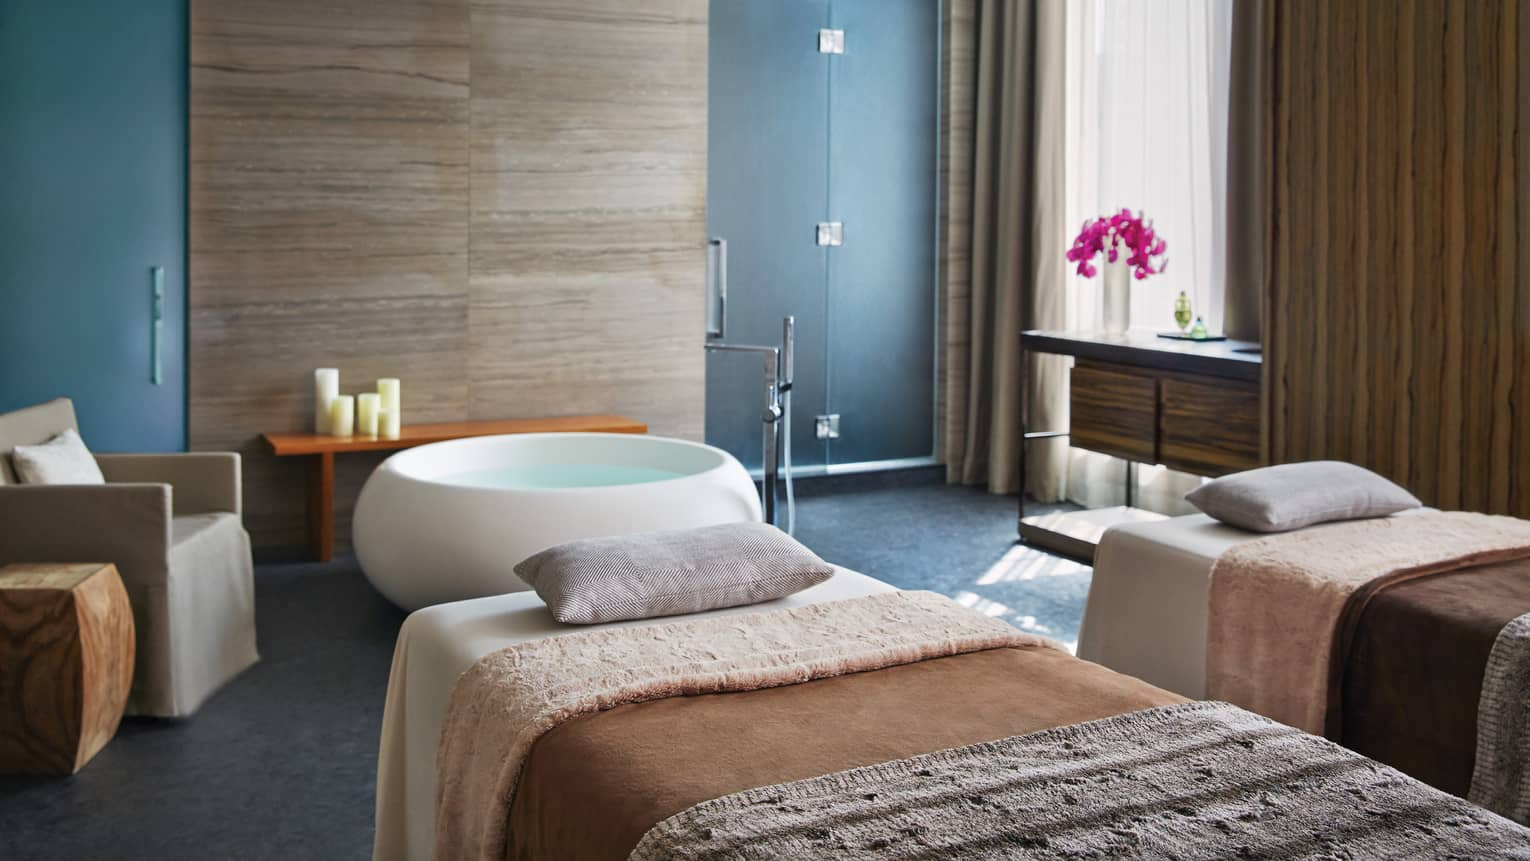 Couples massage bed side-by-side in spa room by round tub, armchair